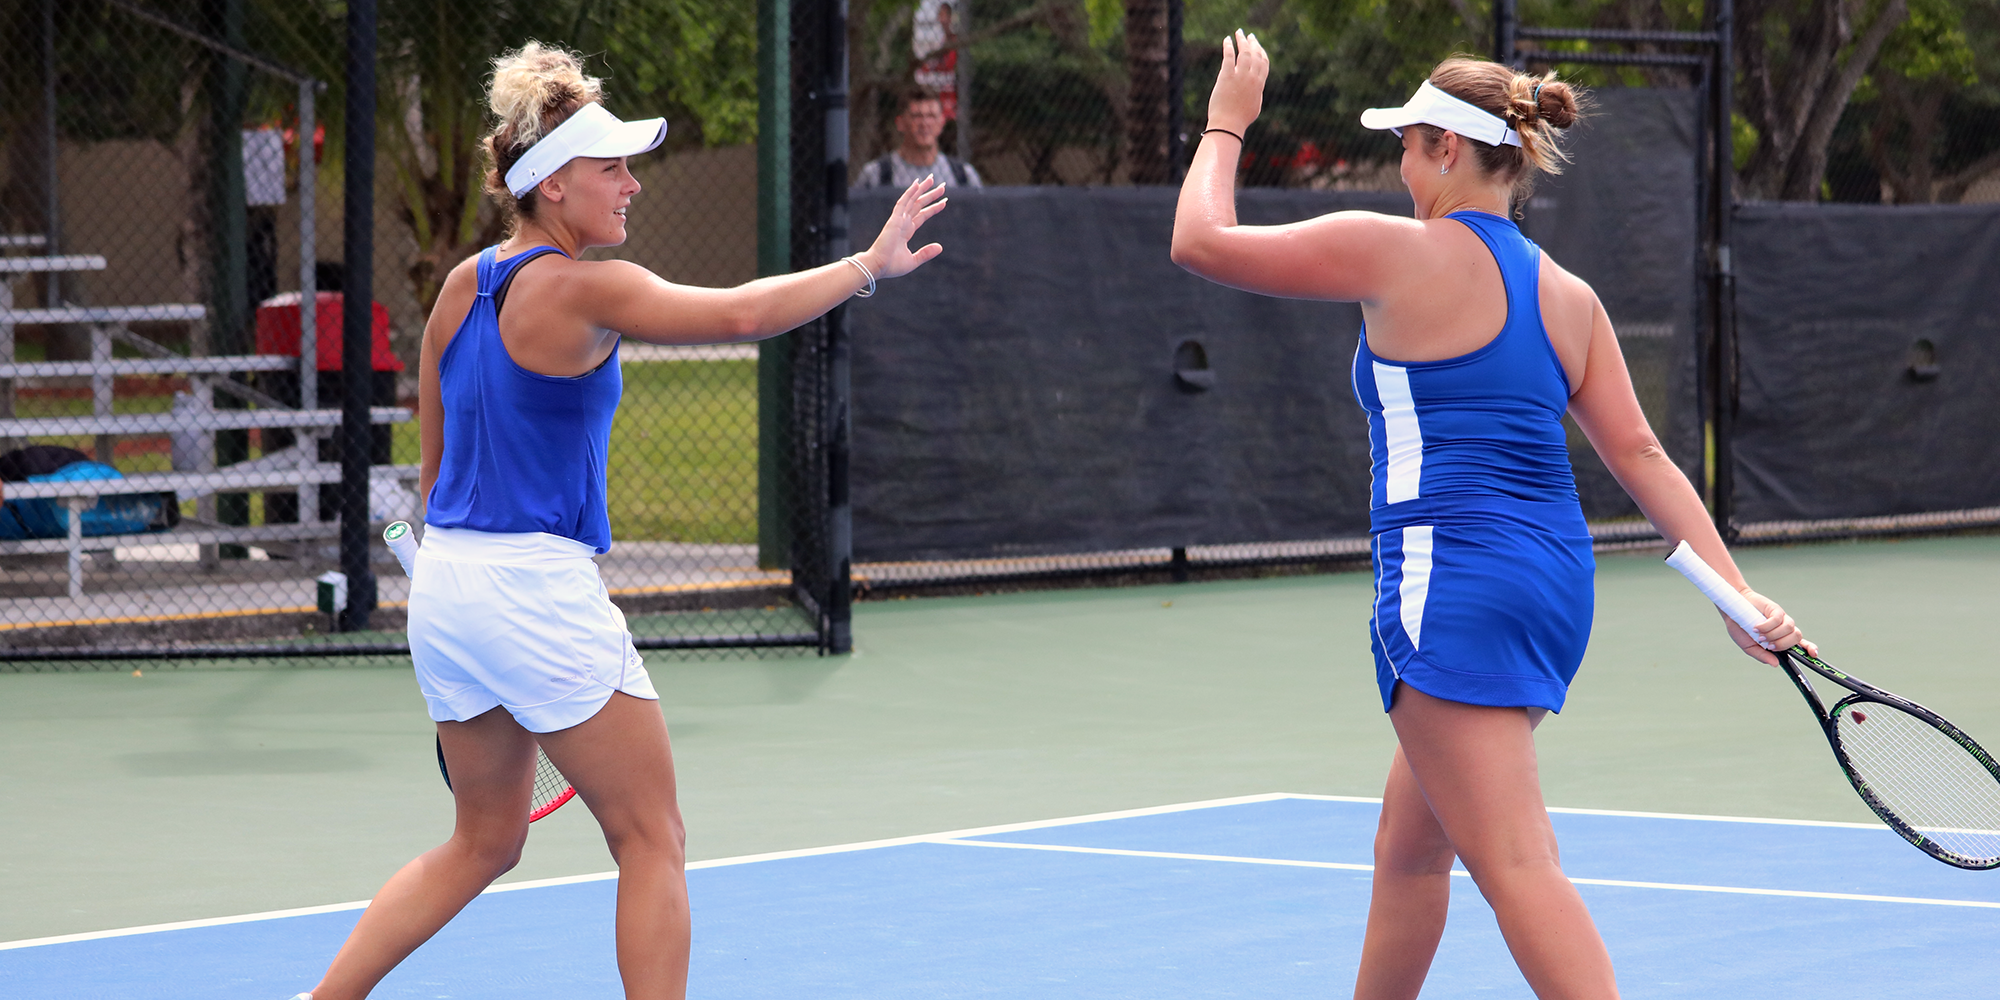 Doubles Squad Approaches Top-20, Women's Tennis Remains No. 1